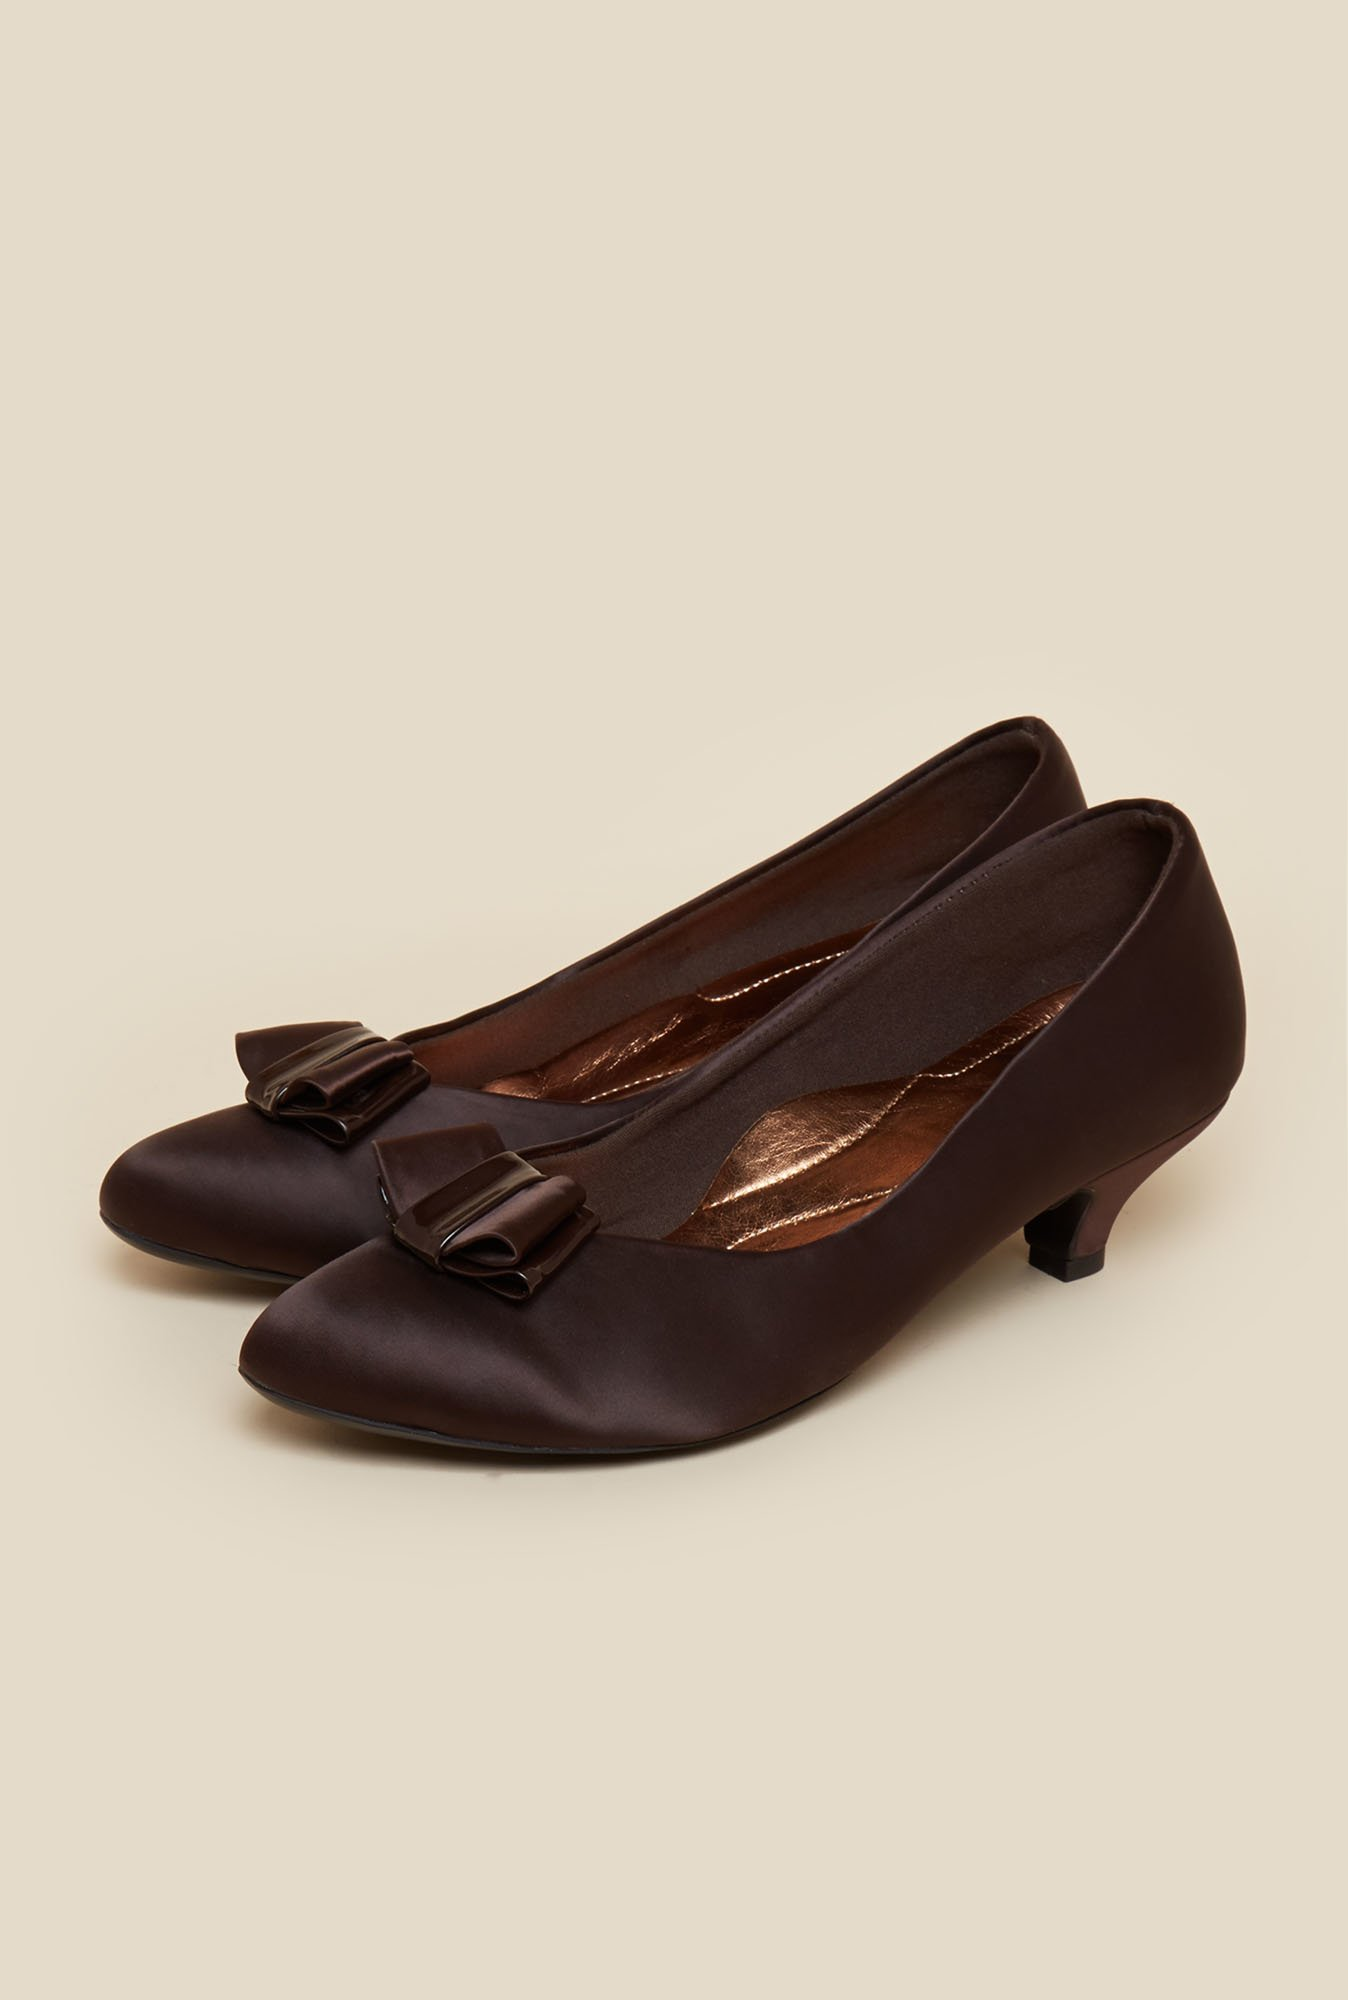 Metro Brown Slip-On Pumps